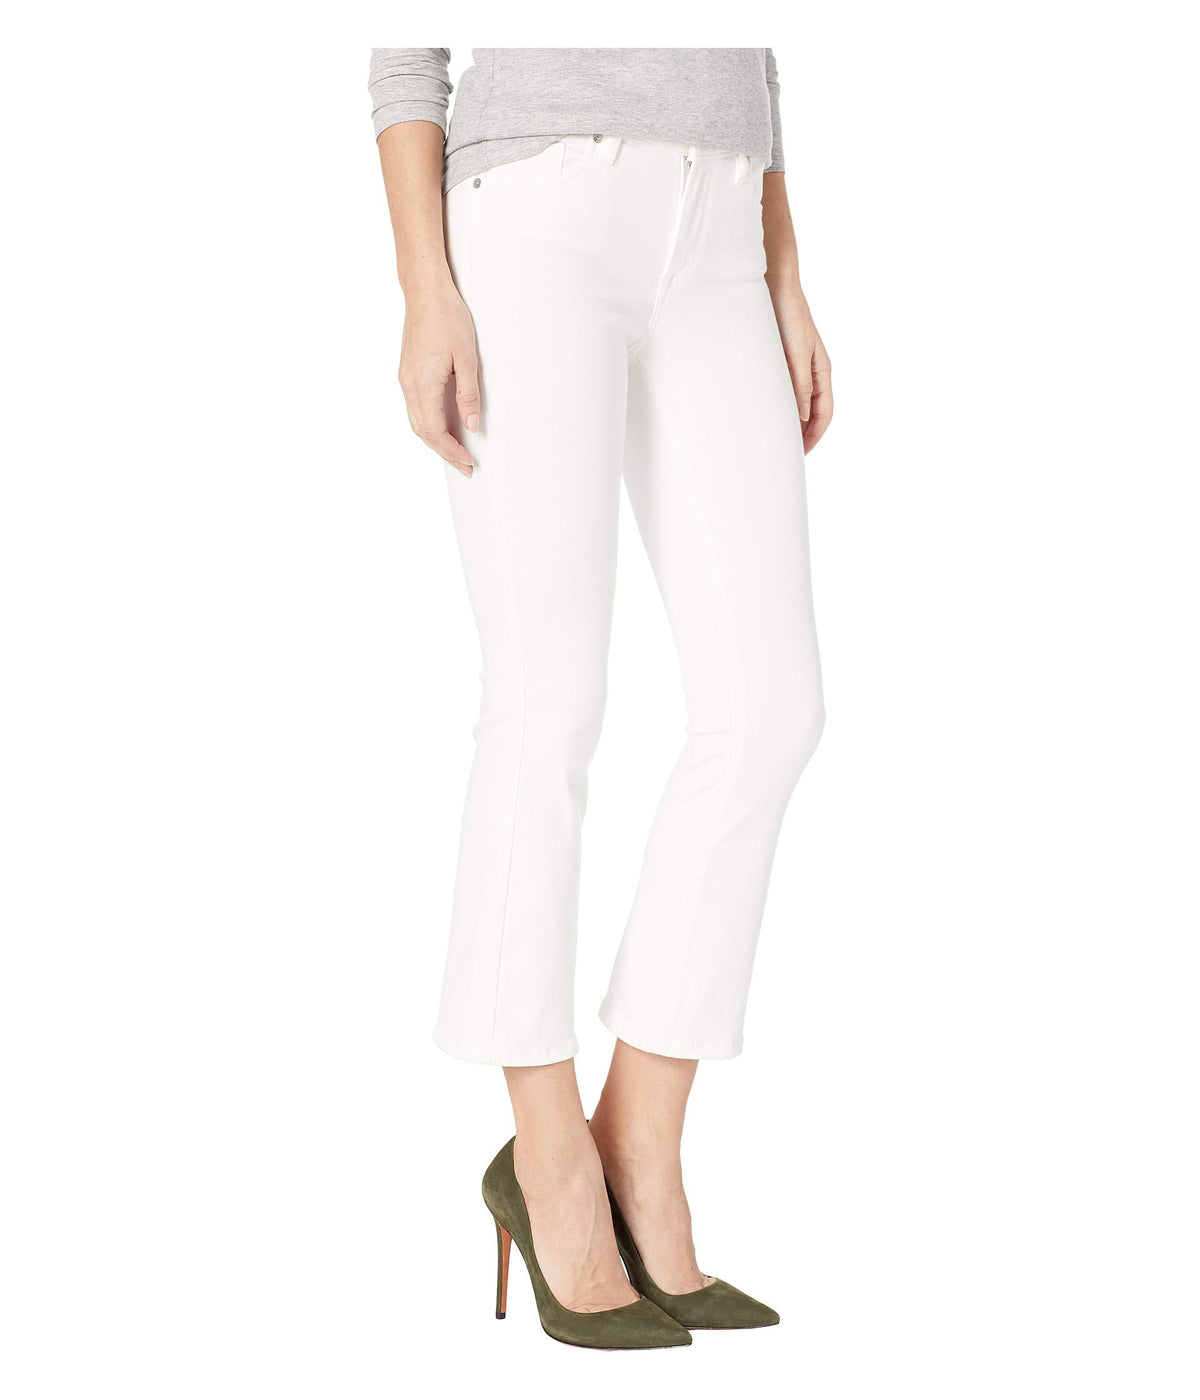 The Varick Cropped White Jeans in Great White